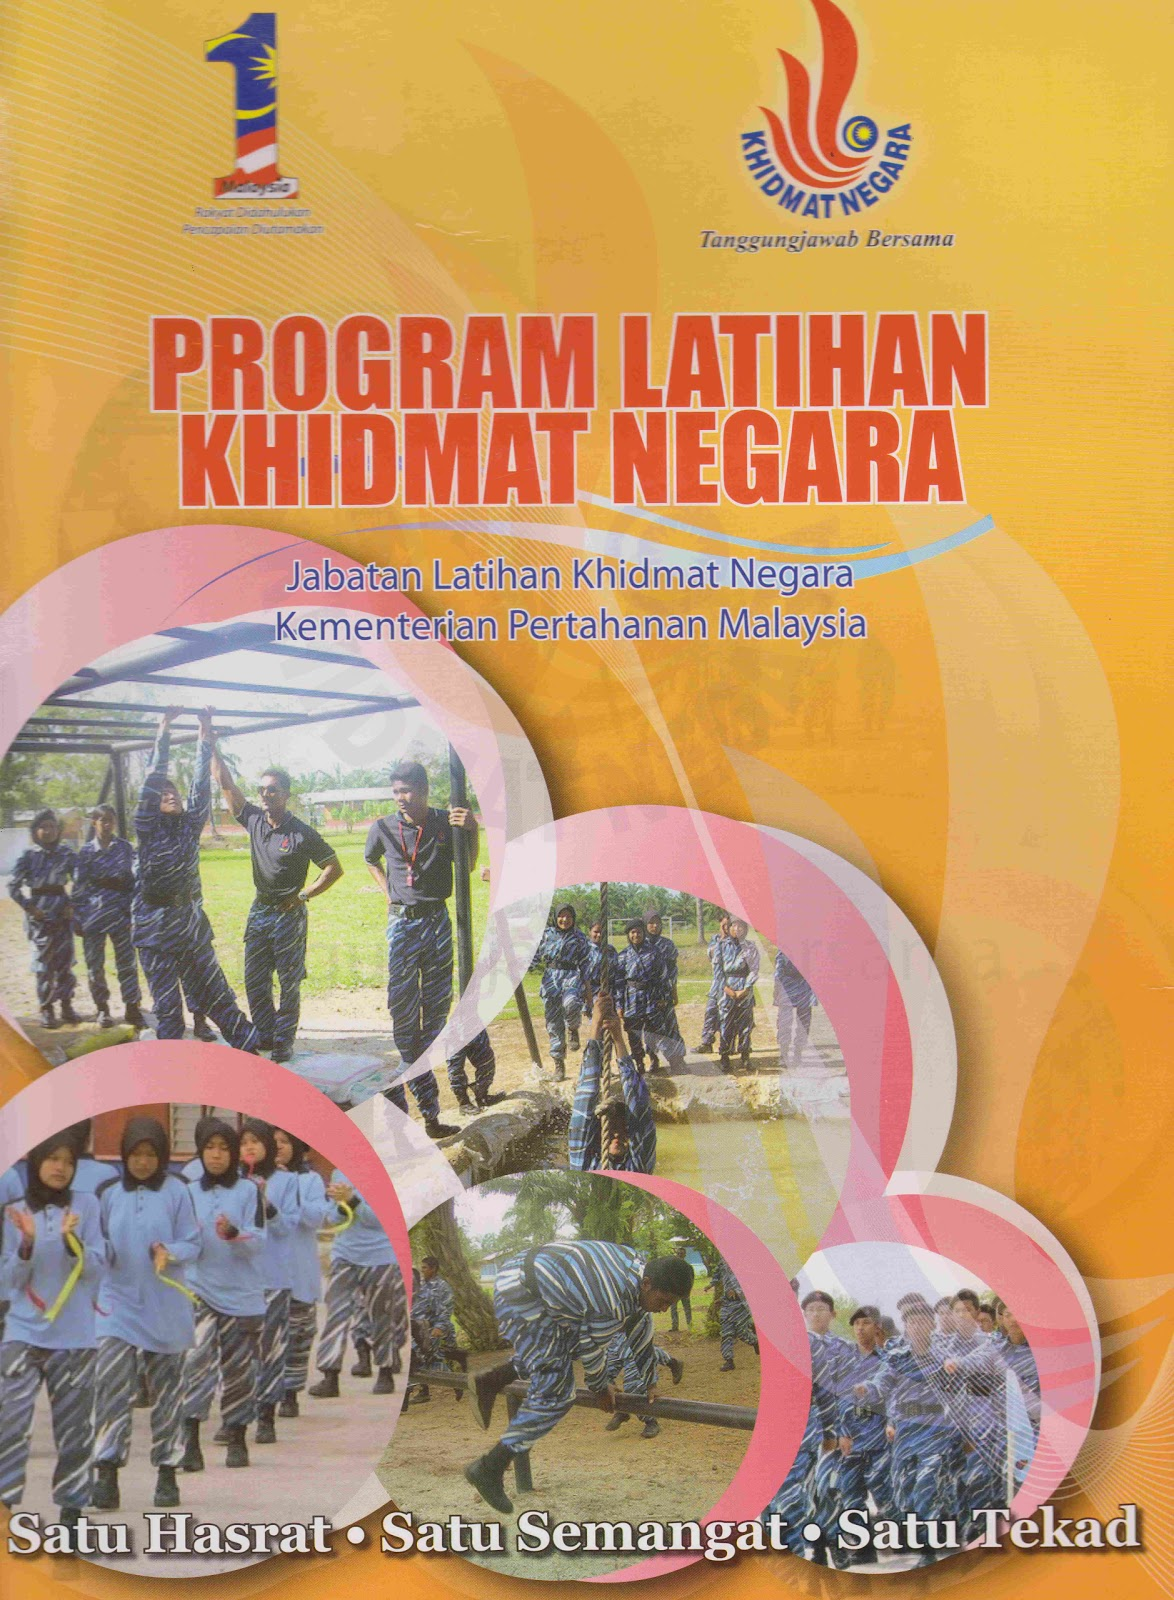 essay experience plkn National service plkn essay national service plkn essay national service experience essay national service 2008 malaysian national service aka plkn the source for most of the information.